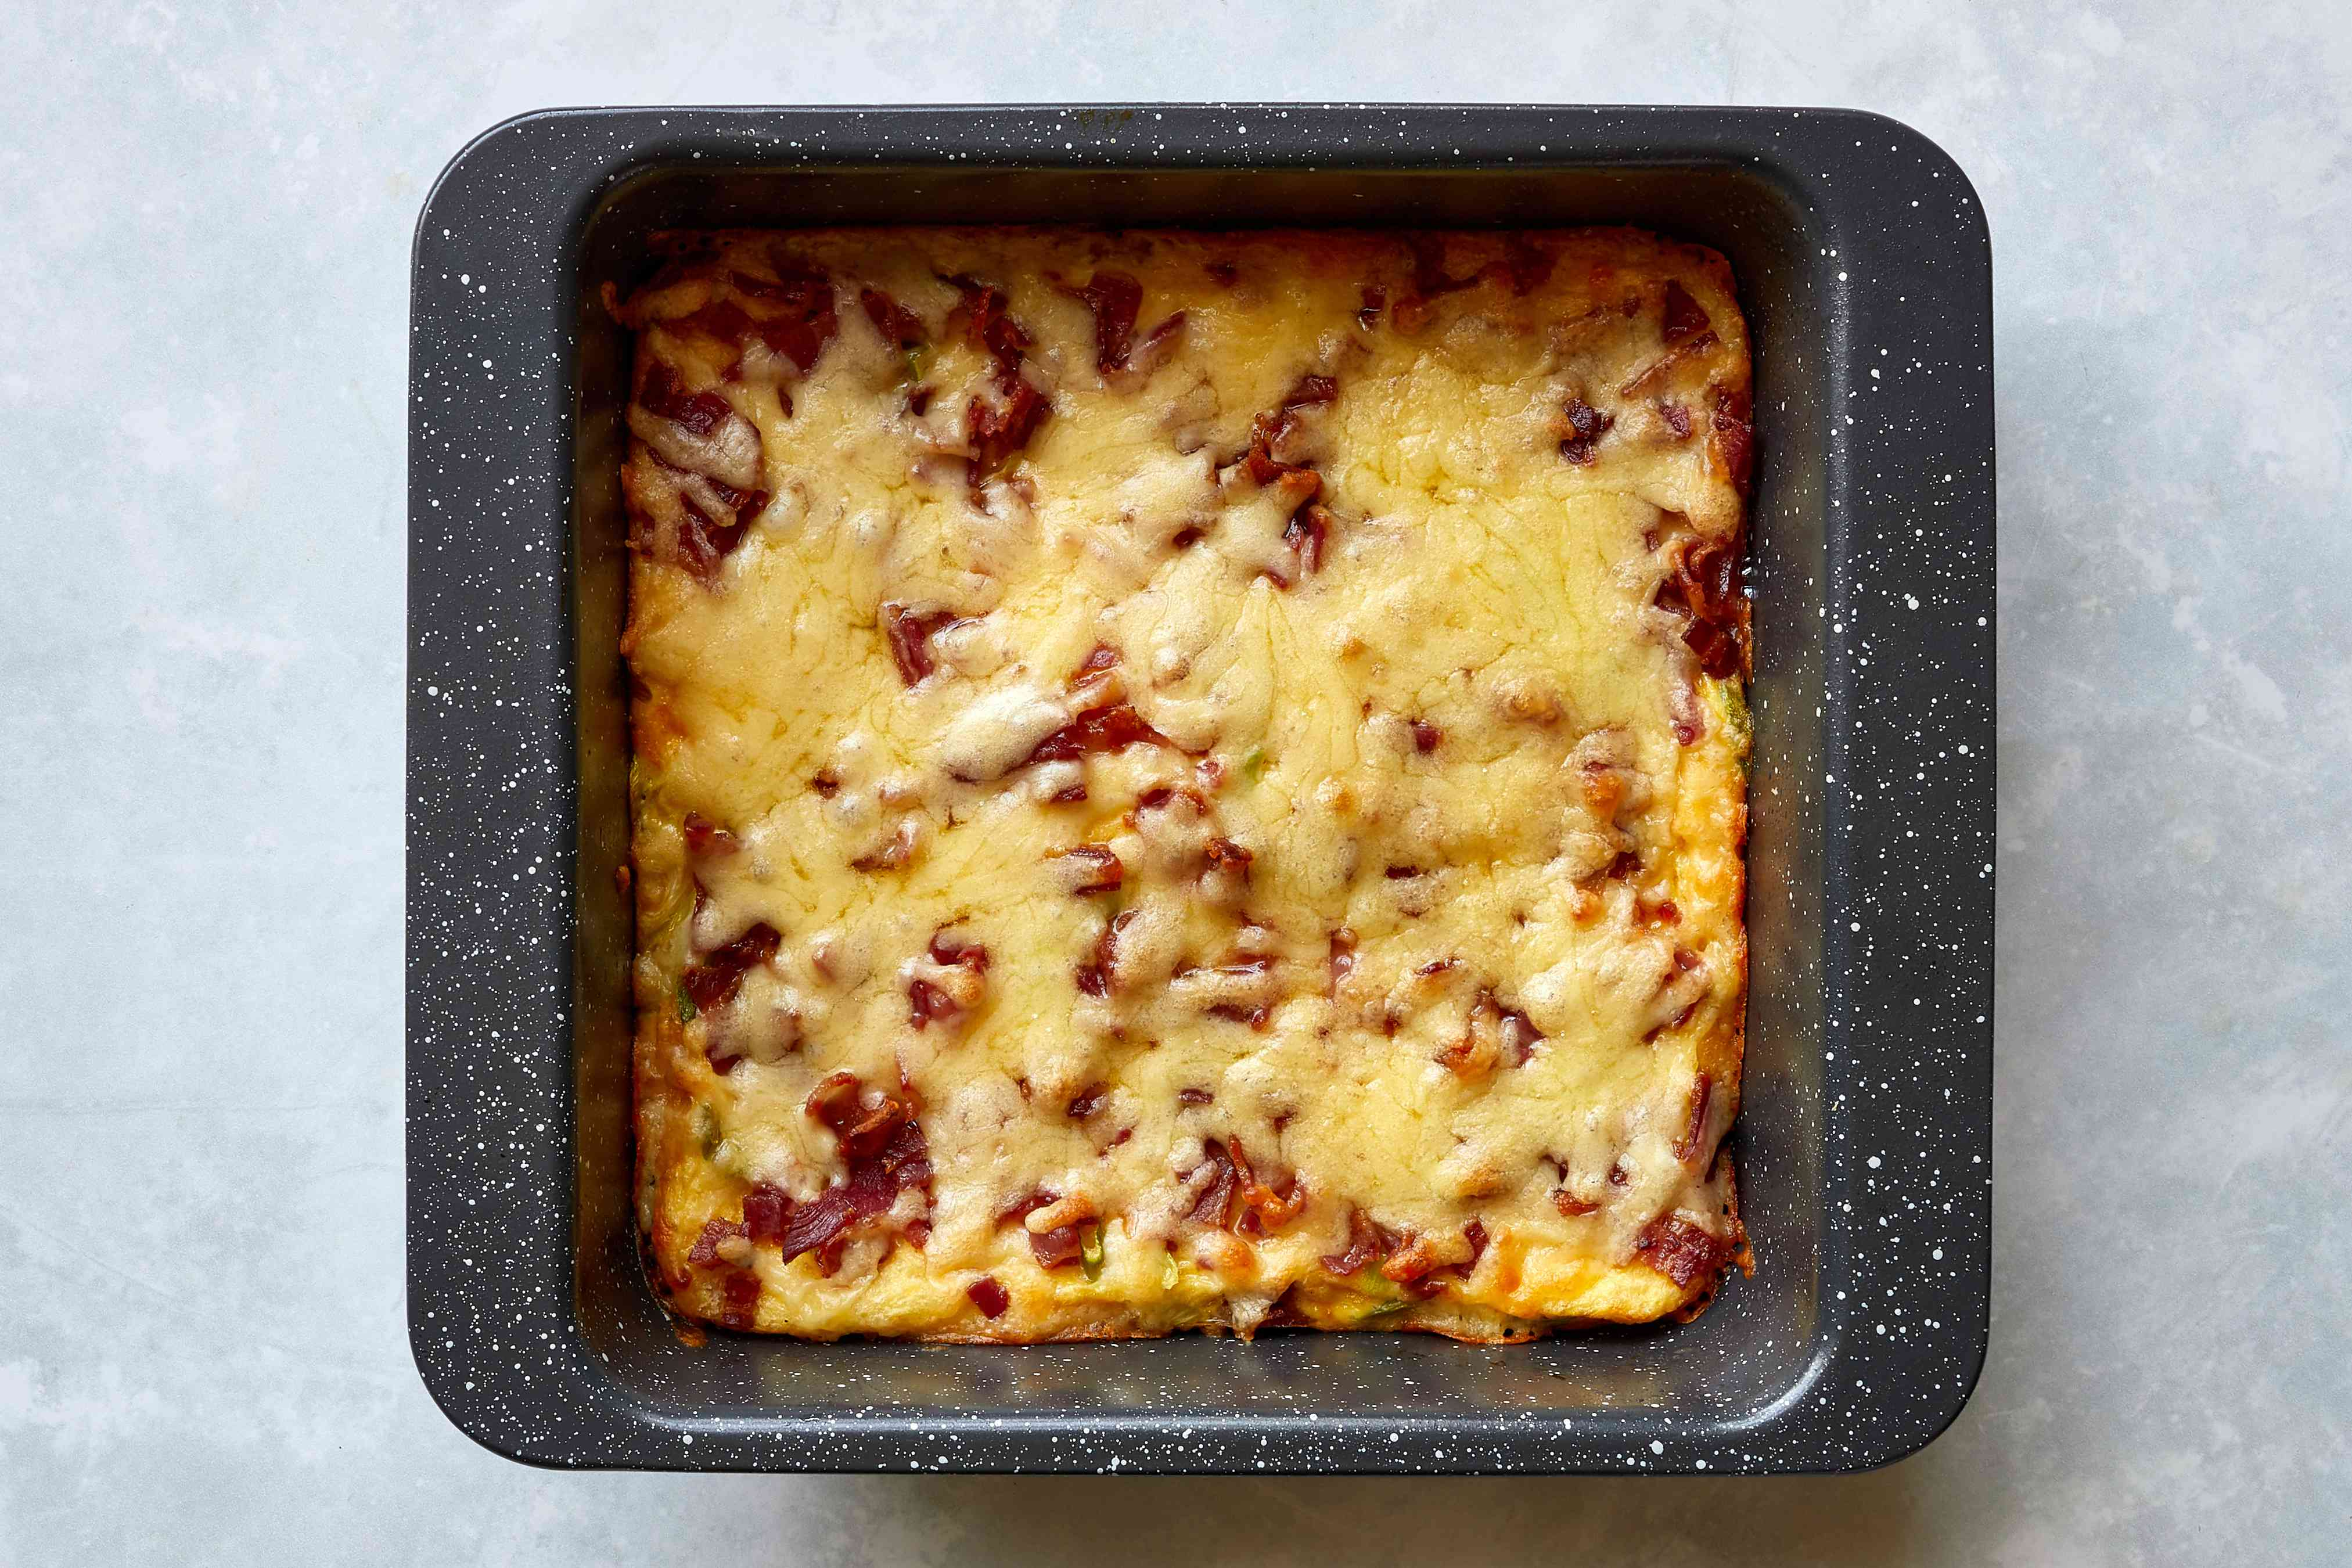 cheese on top of the bacon and egg casserole in a baking dish